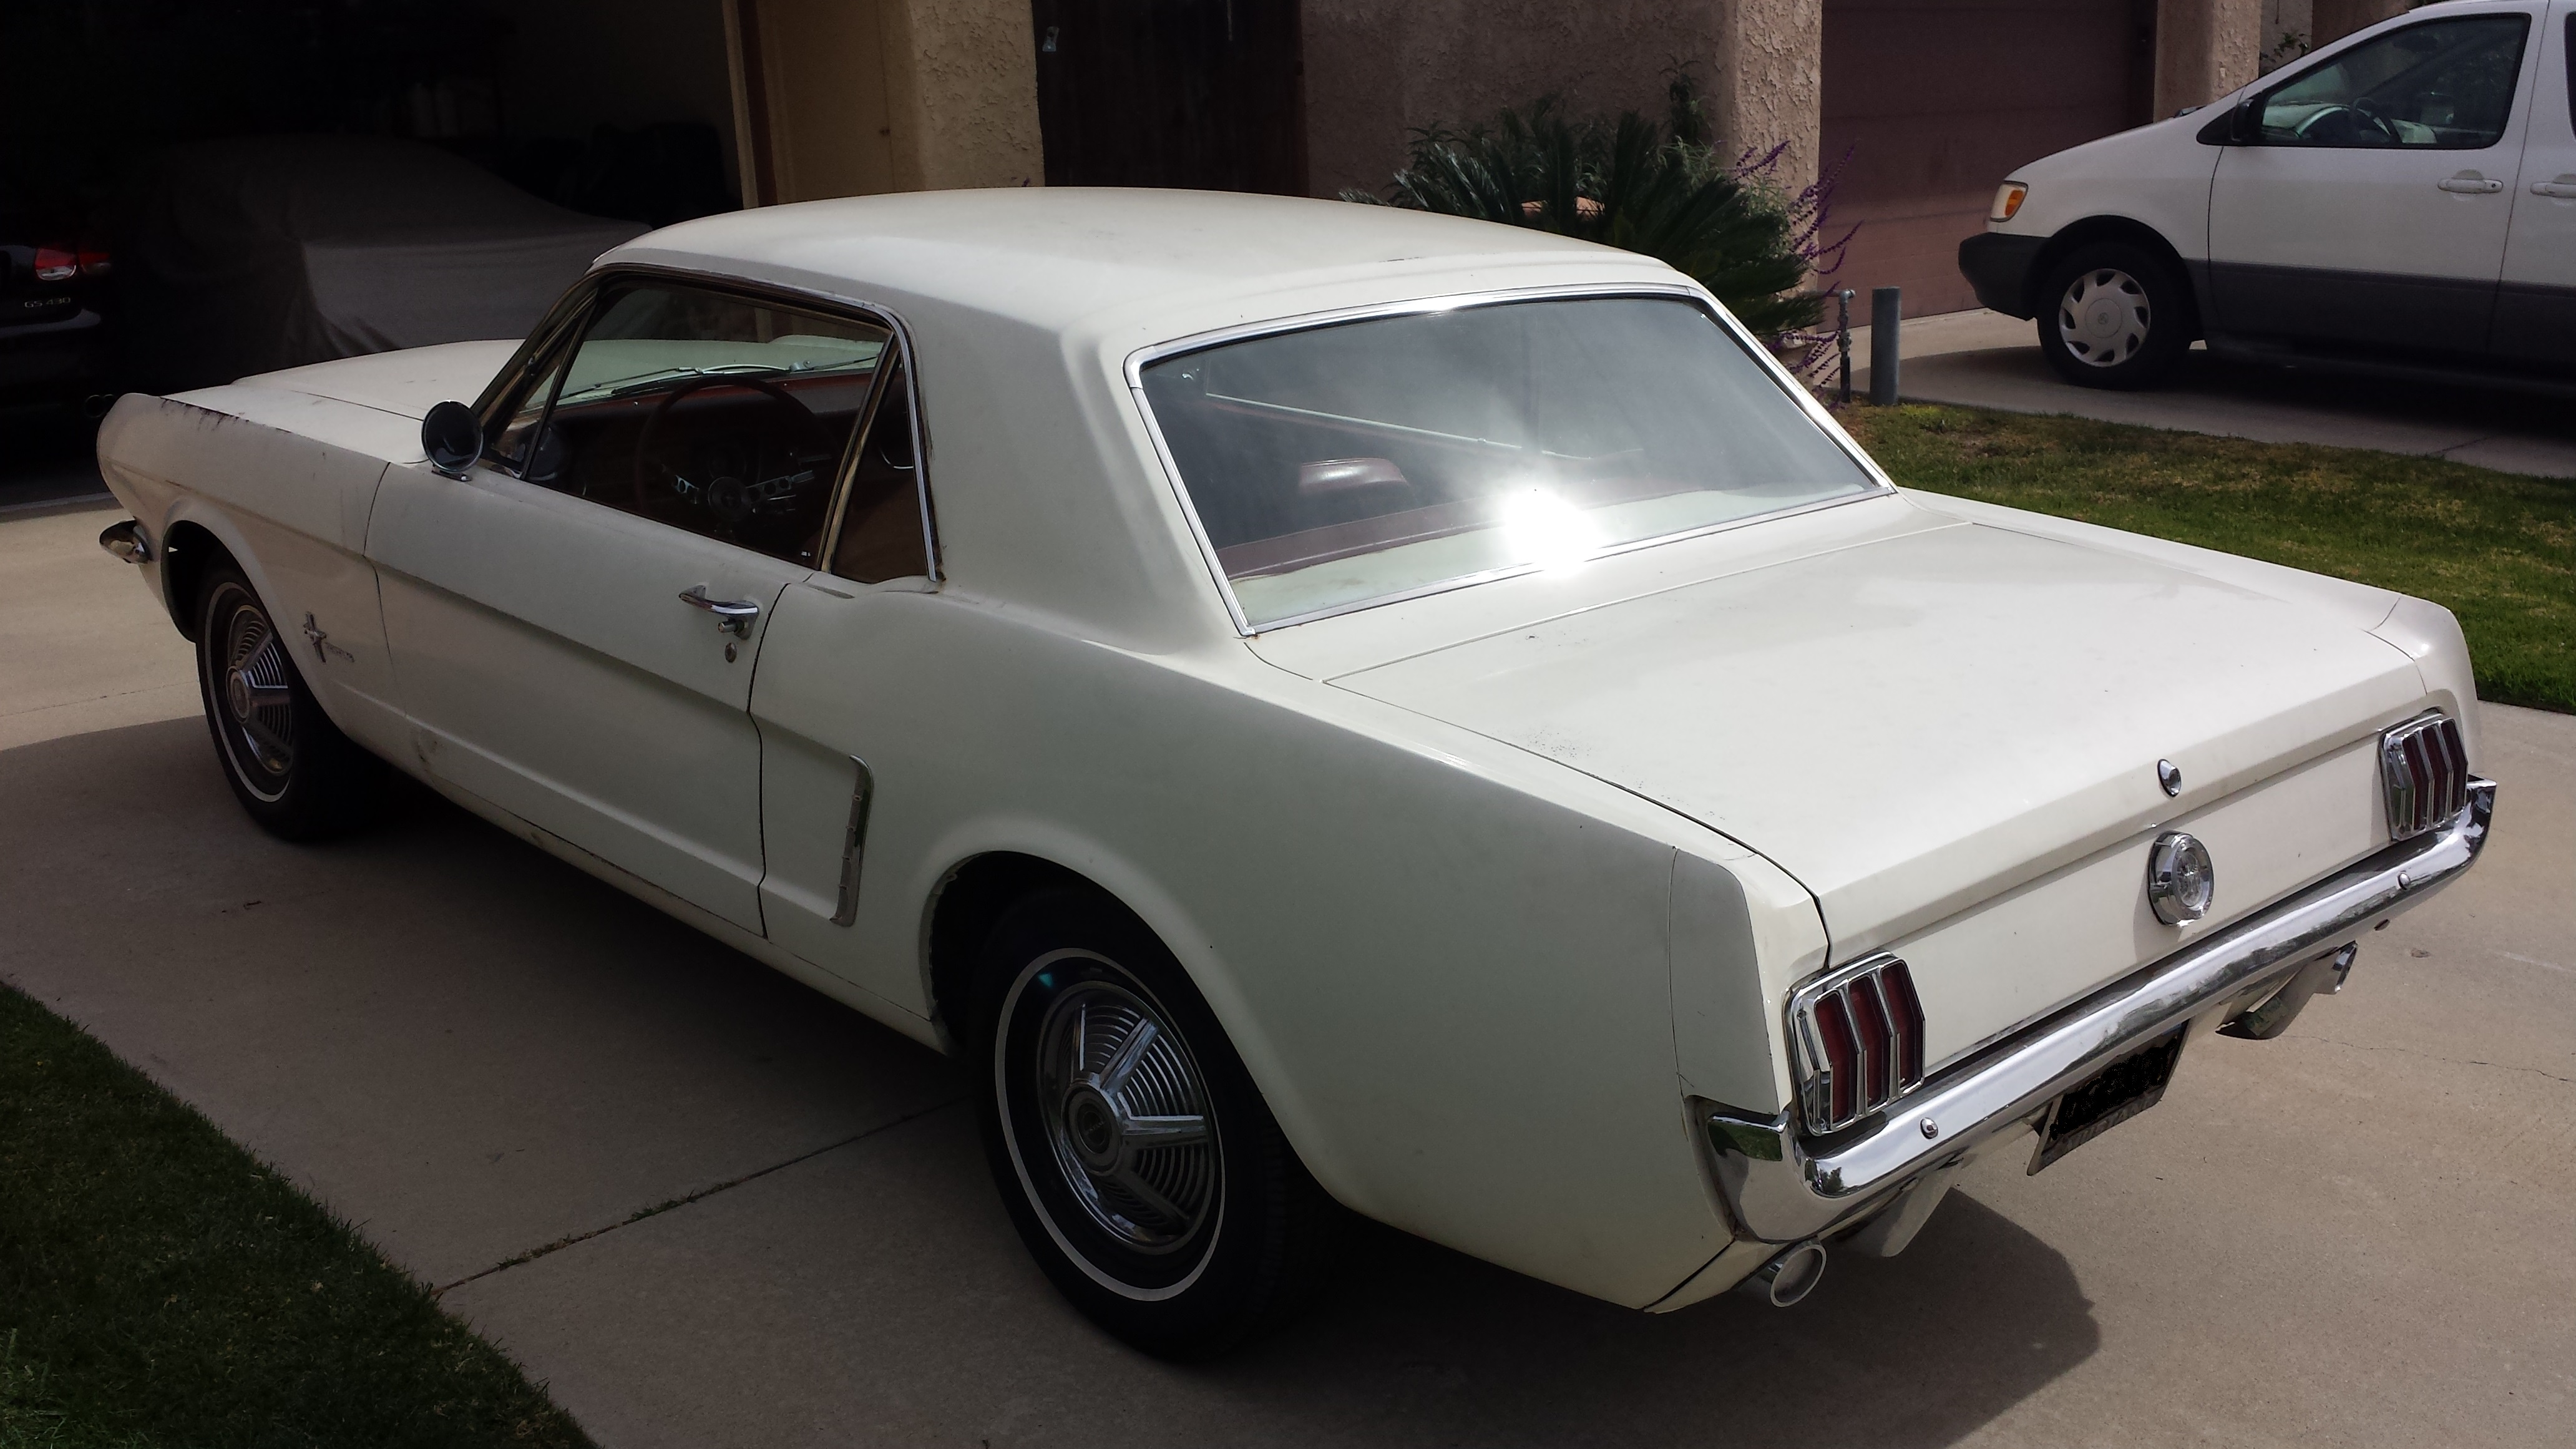 HYPWR65's 1965 Ford Mustang